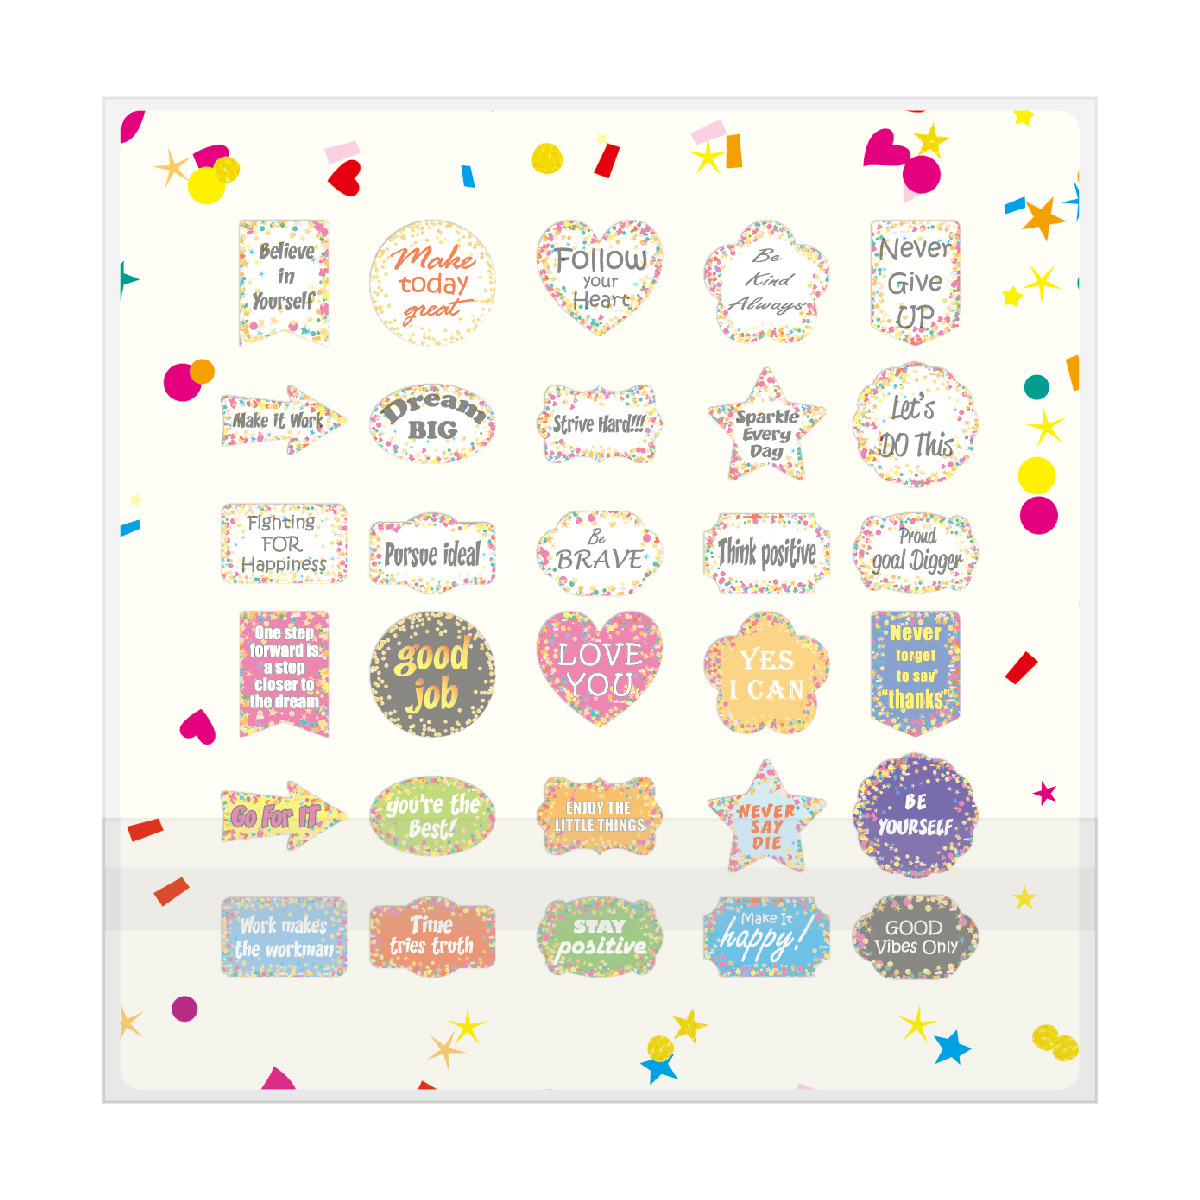 30 Pcs pack Random Classic Fashion Style Graffiti Stickers for Moto Car Suitcase Cool Laptop Stickers Skateboard Sticker in Stickers from Toys Hobbies